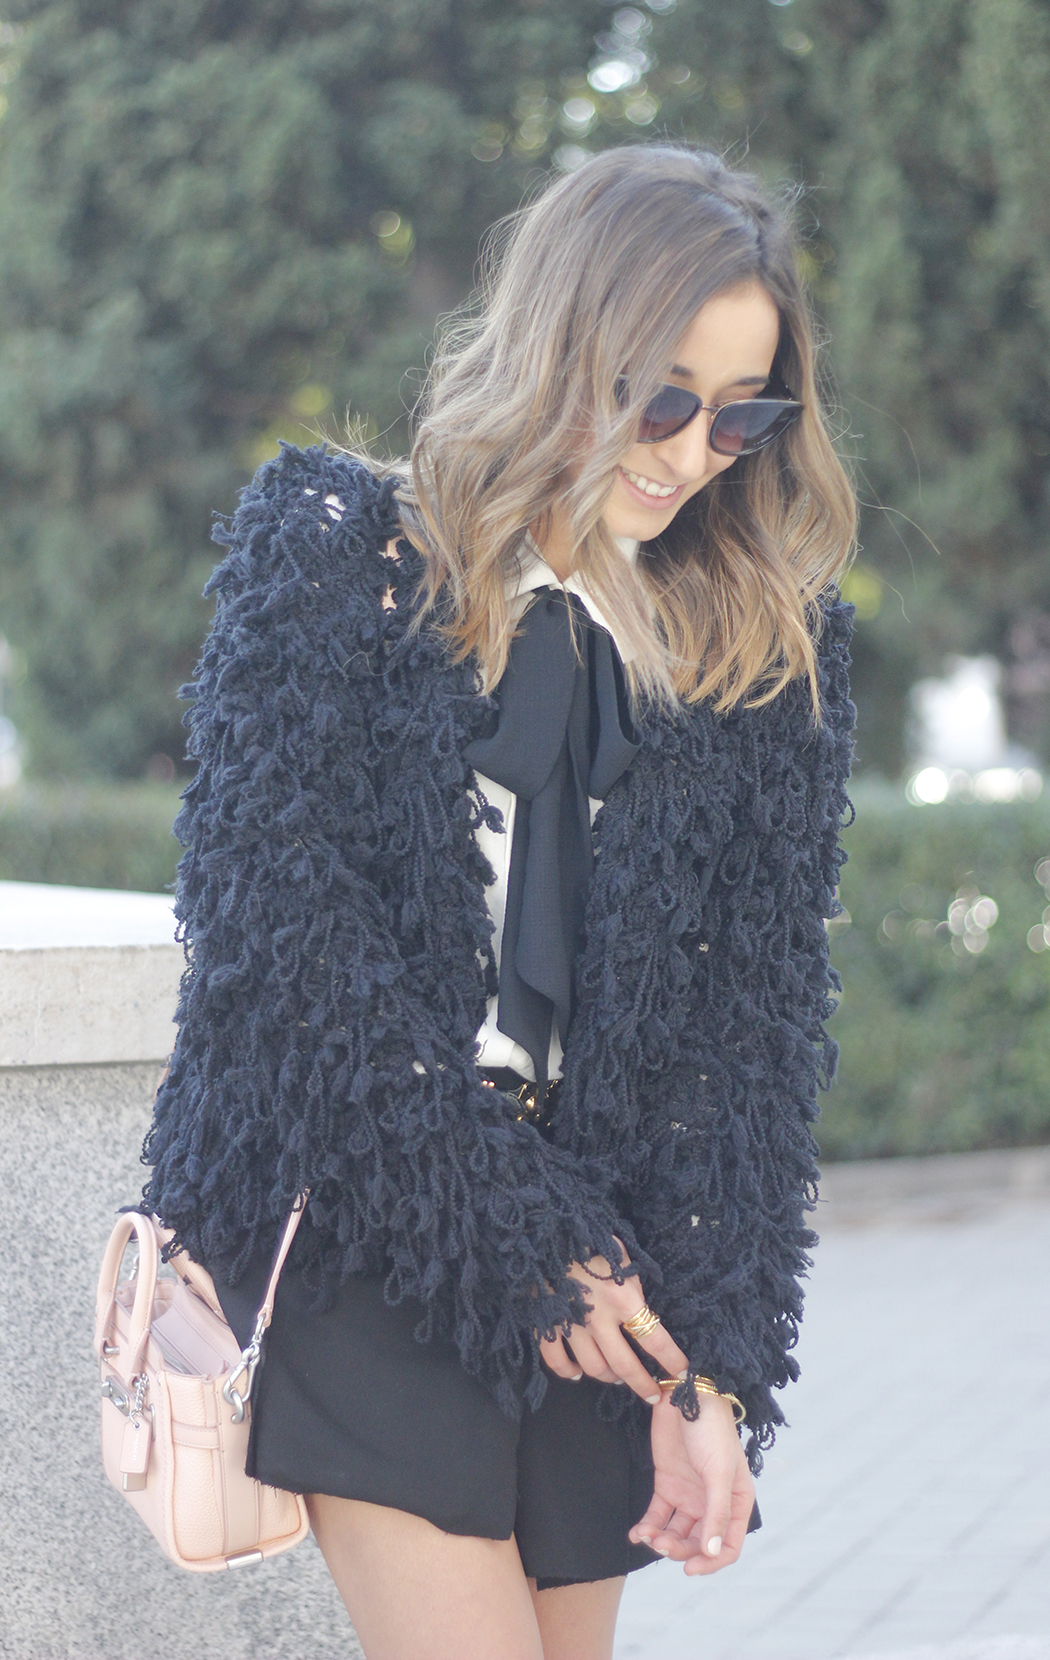 black jacket shirt with black bow coach pink bag heels outfit04